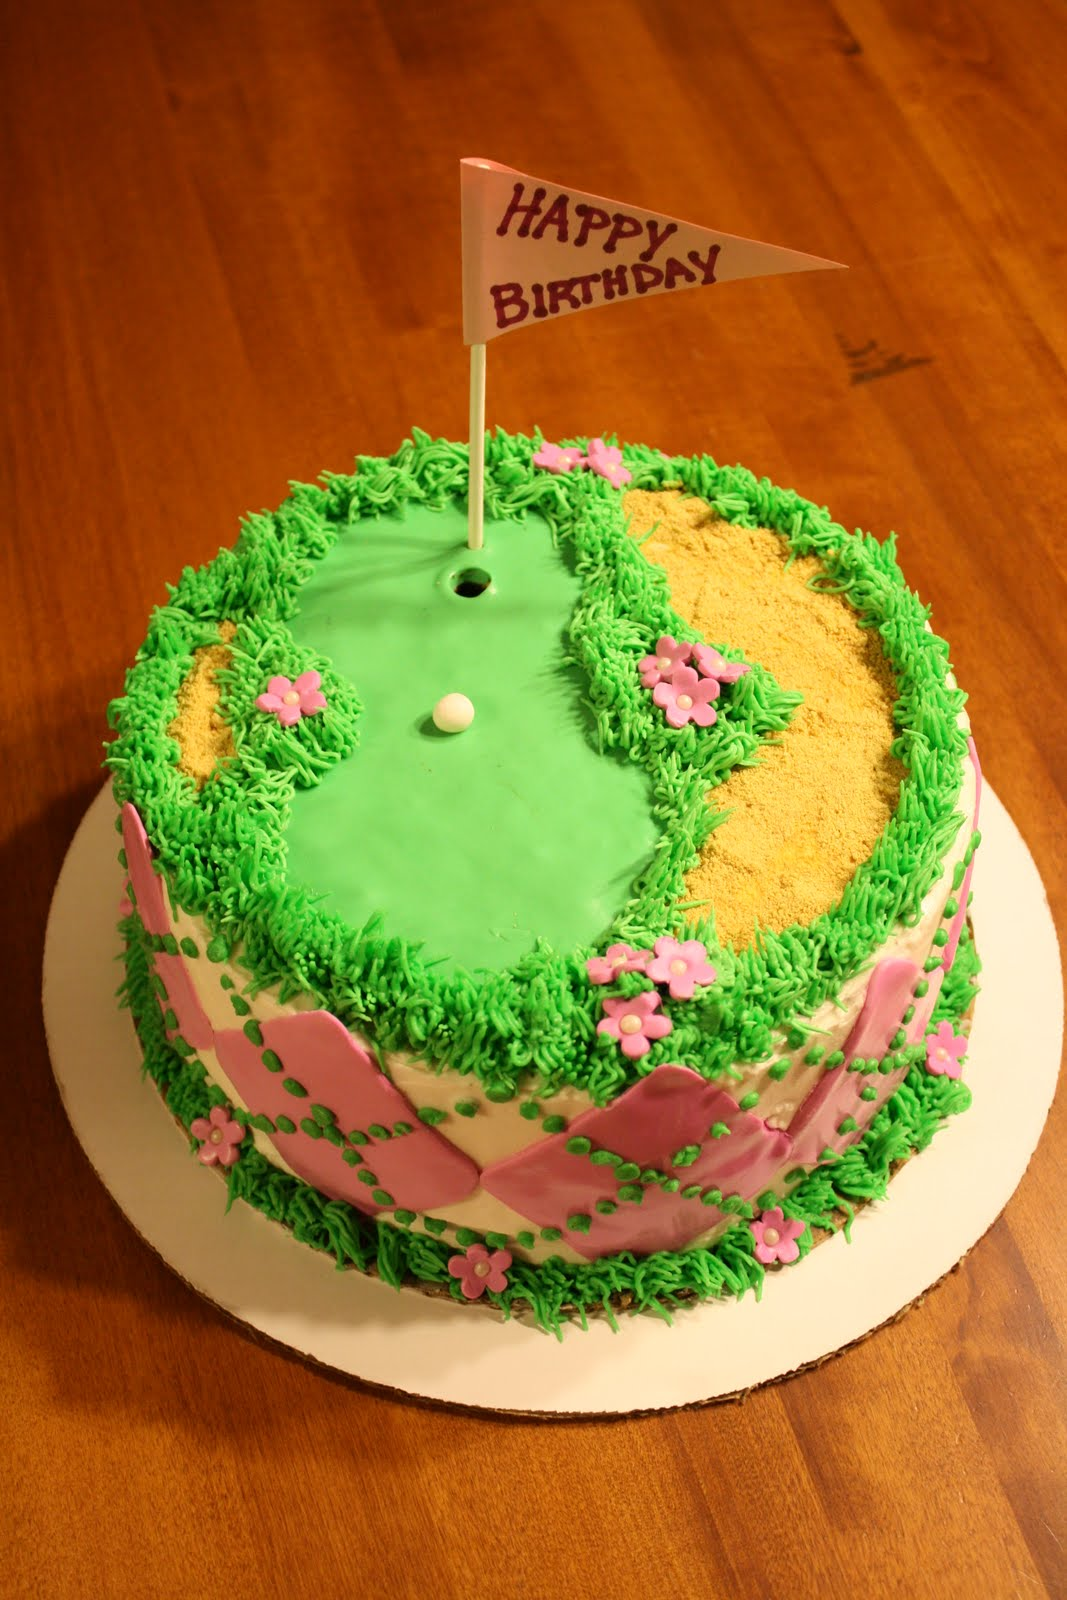 Funny Birthday Cake Pinterest Image Inspiration of Cake and